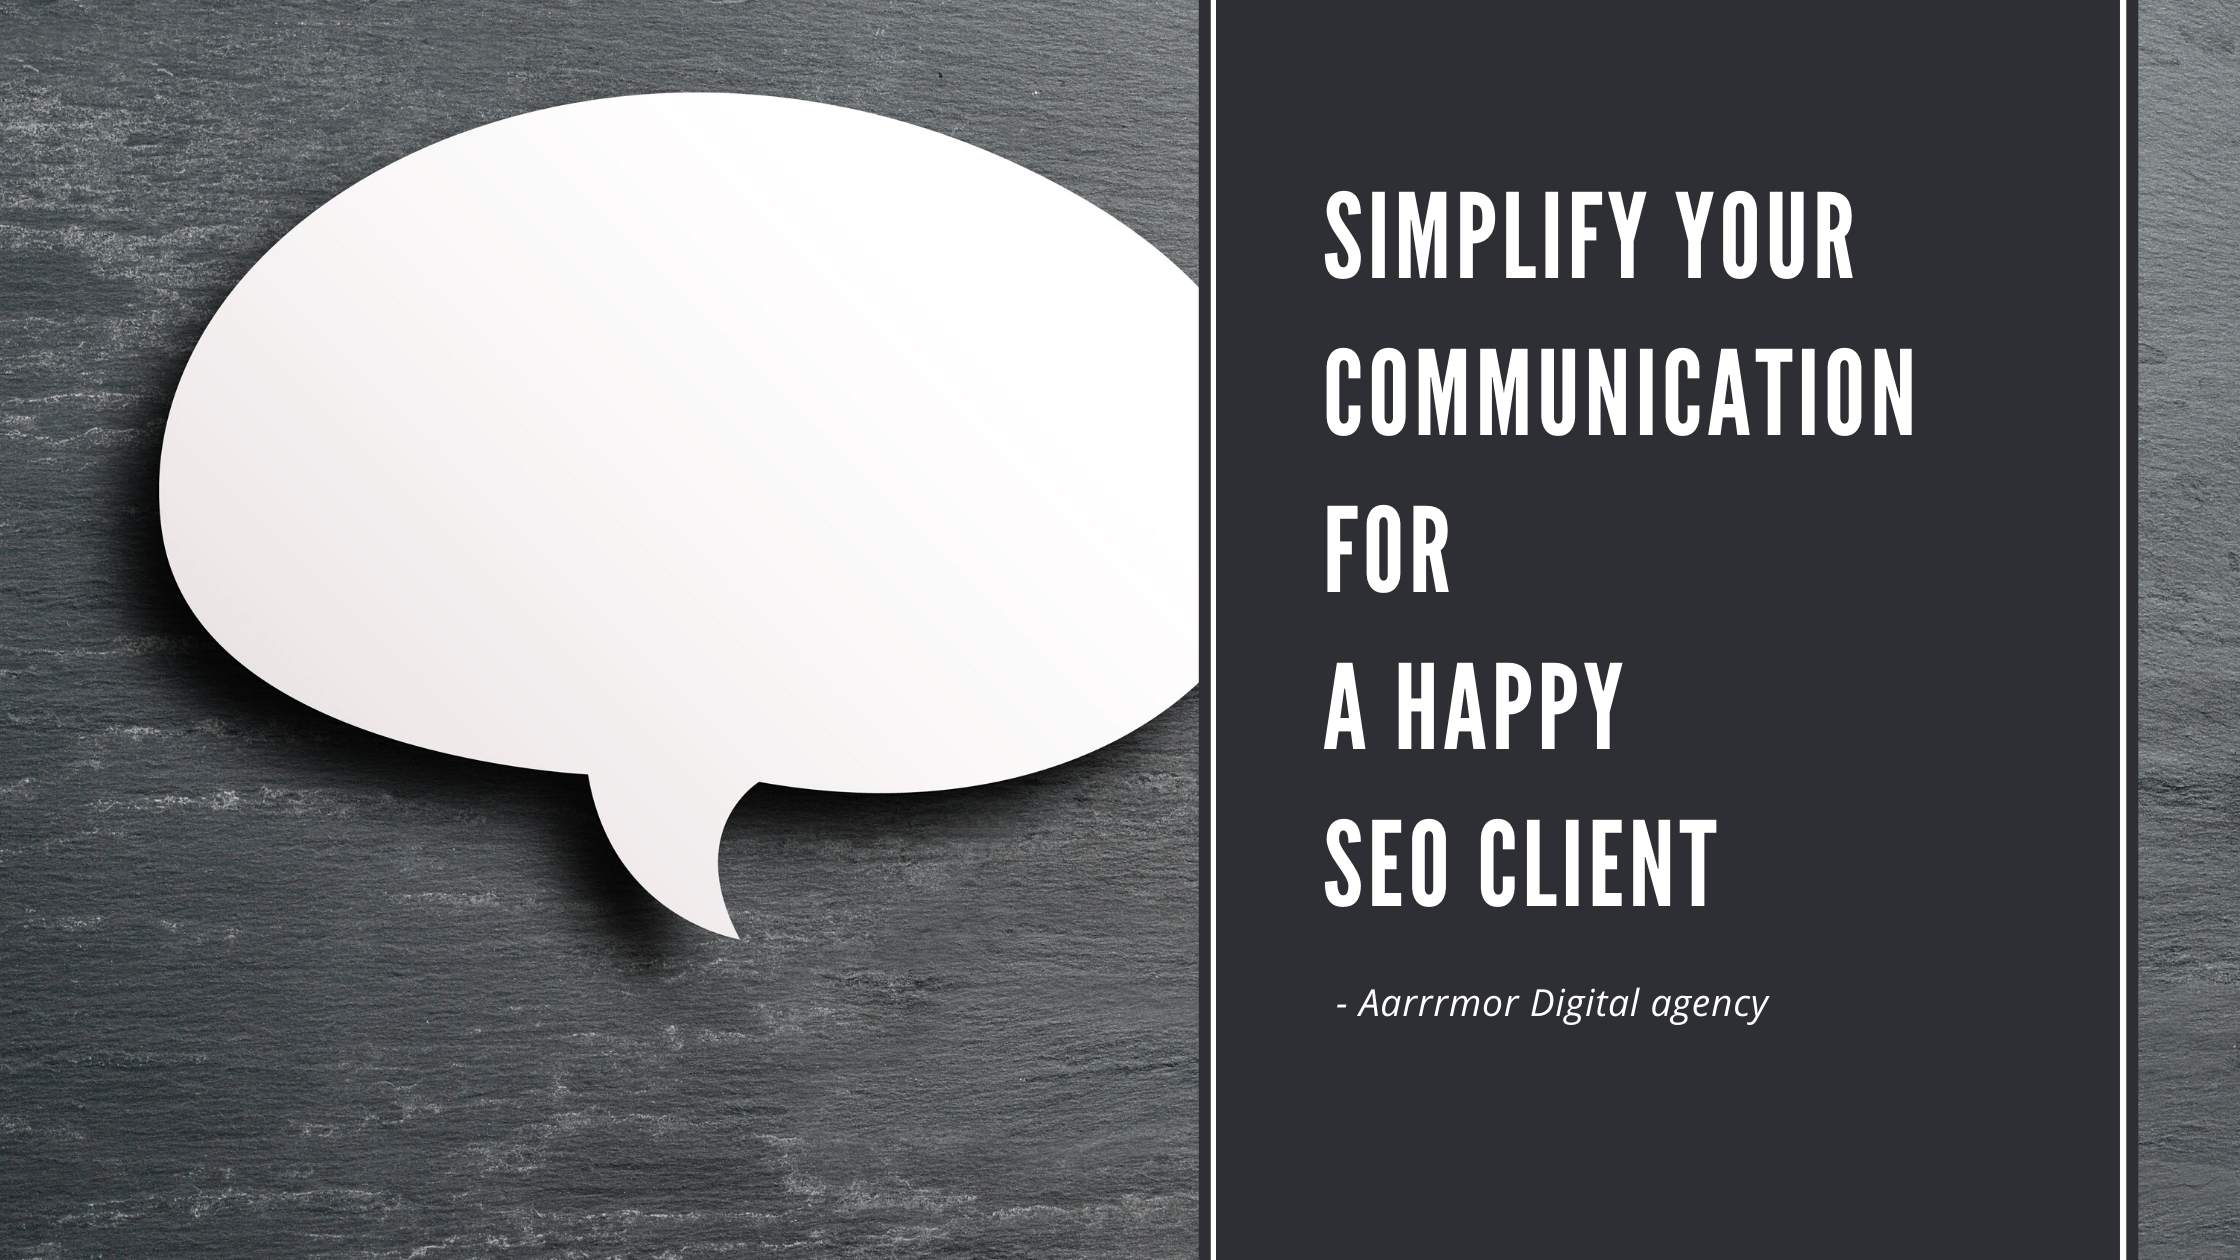 Simplify your Communication for a Happy SEO client